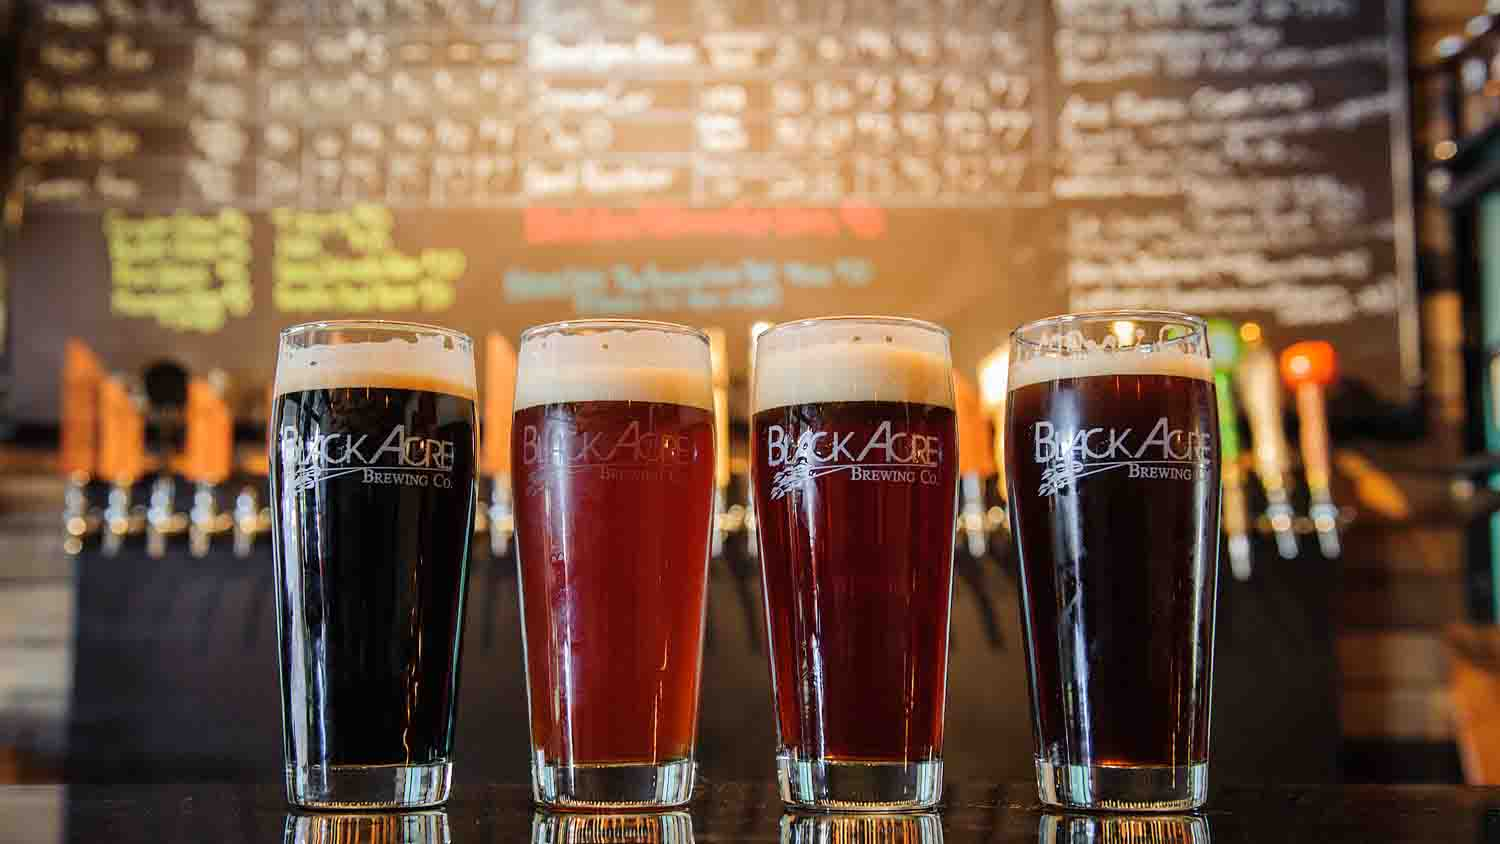 Black-acre-brewery-3